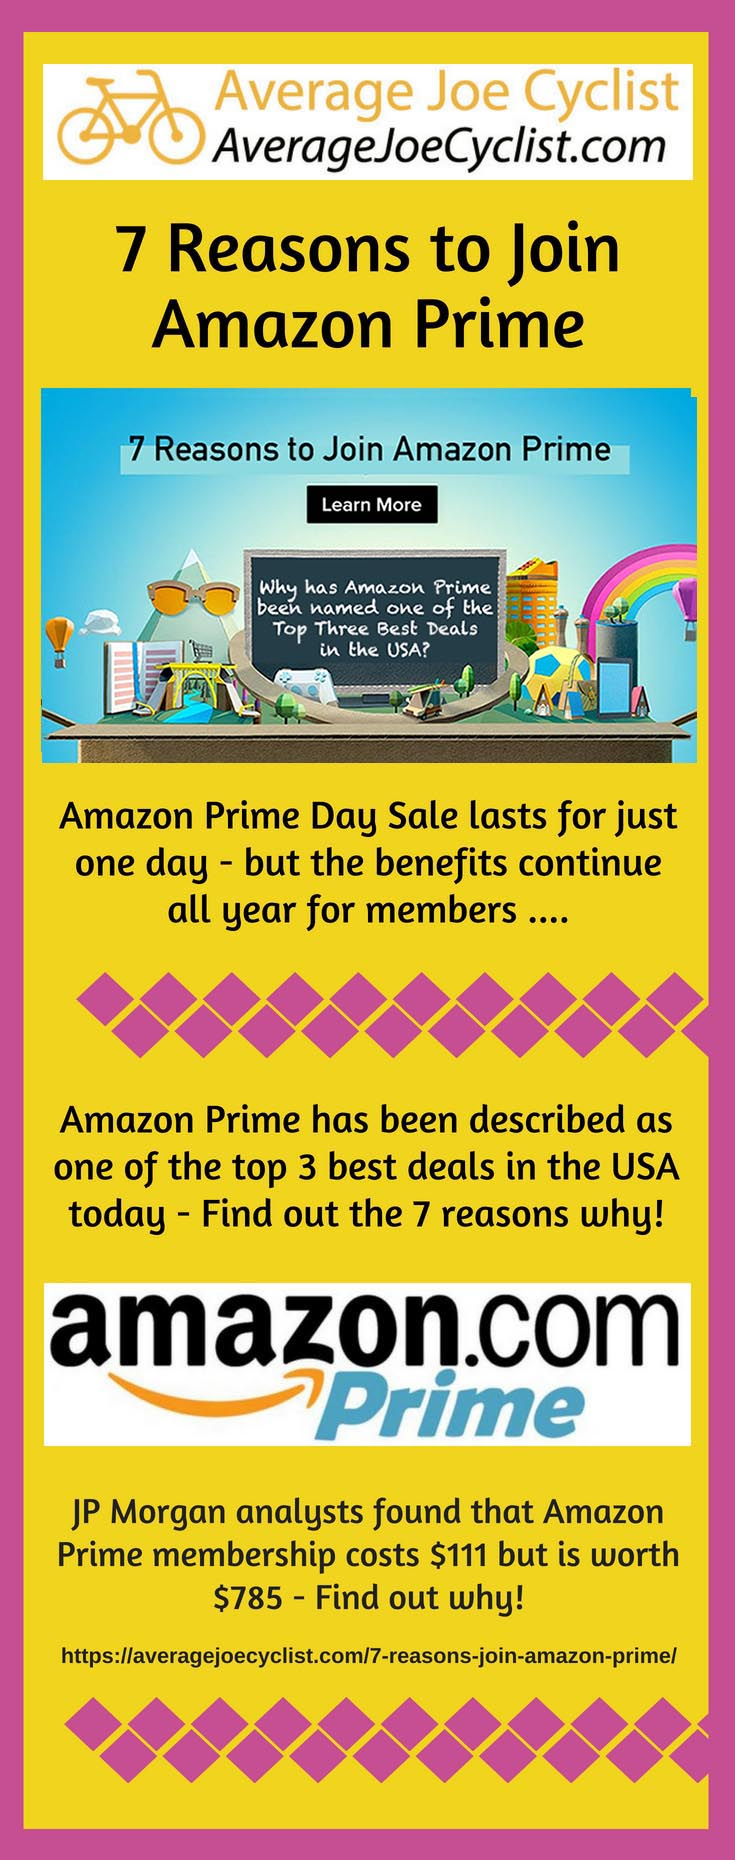 7 Reasons to join Amazon Prime